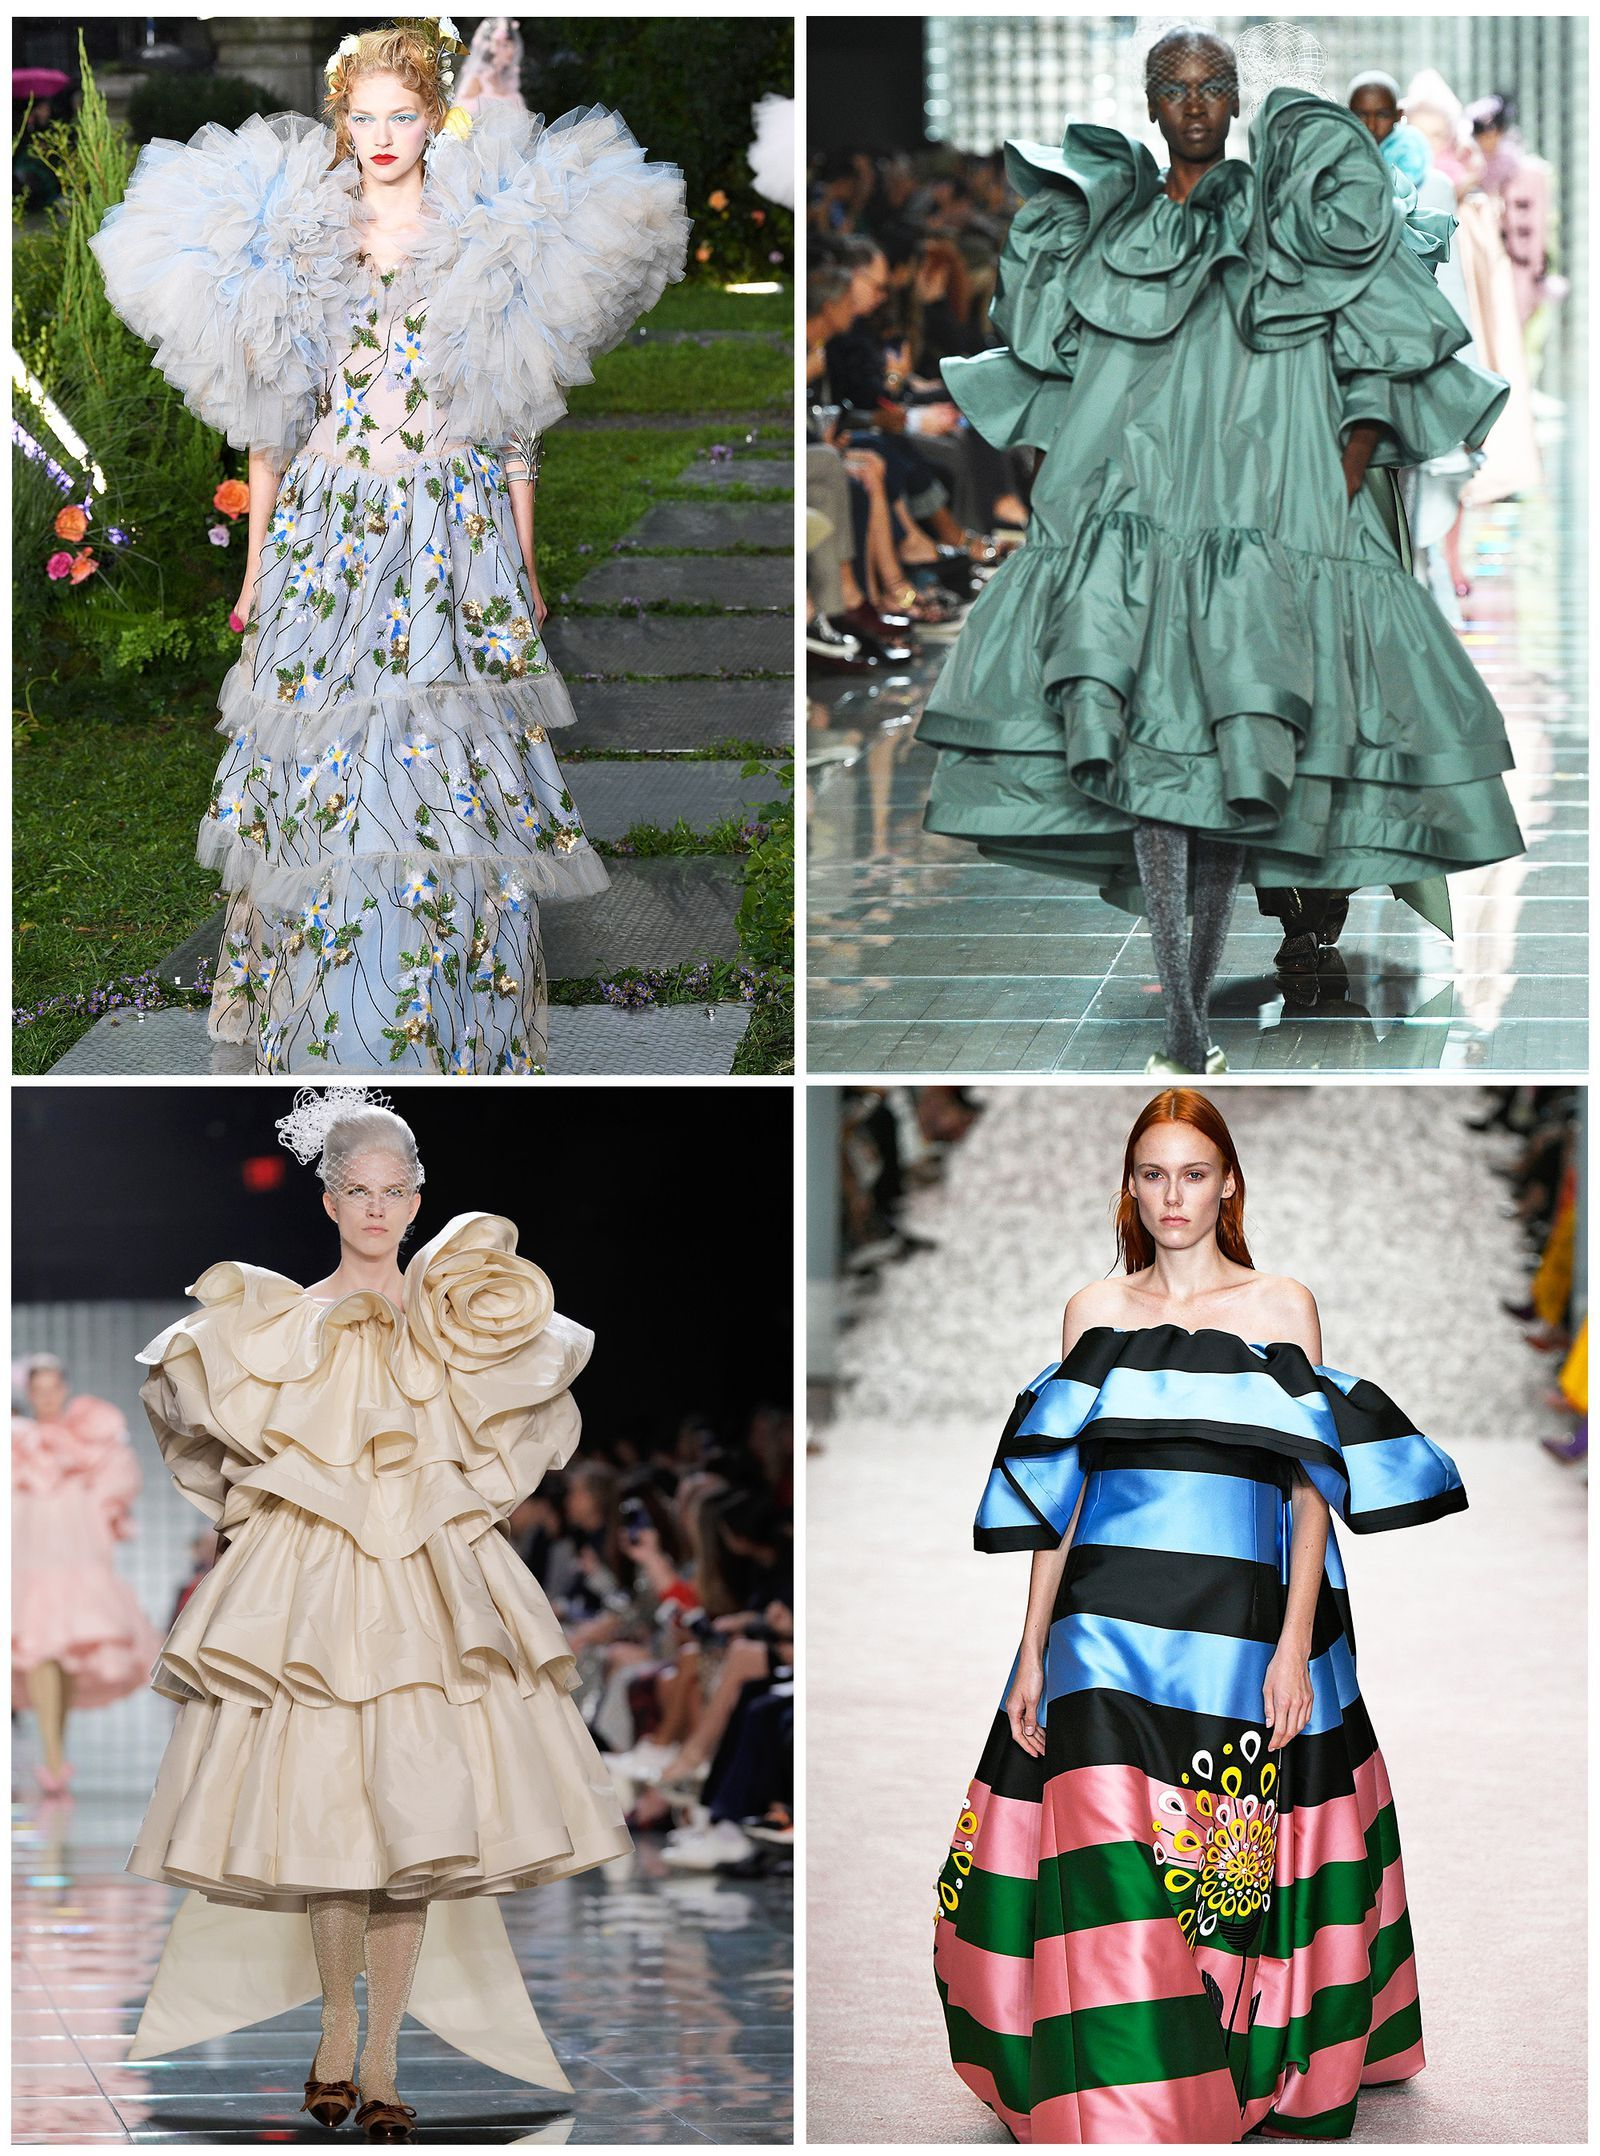 dress - Trends spring that make a statement video